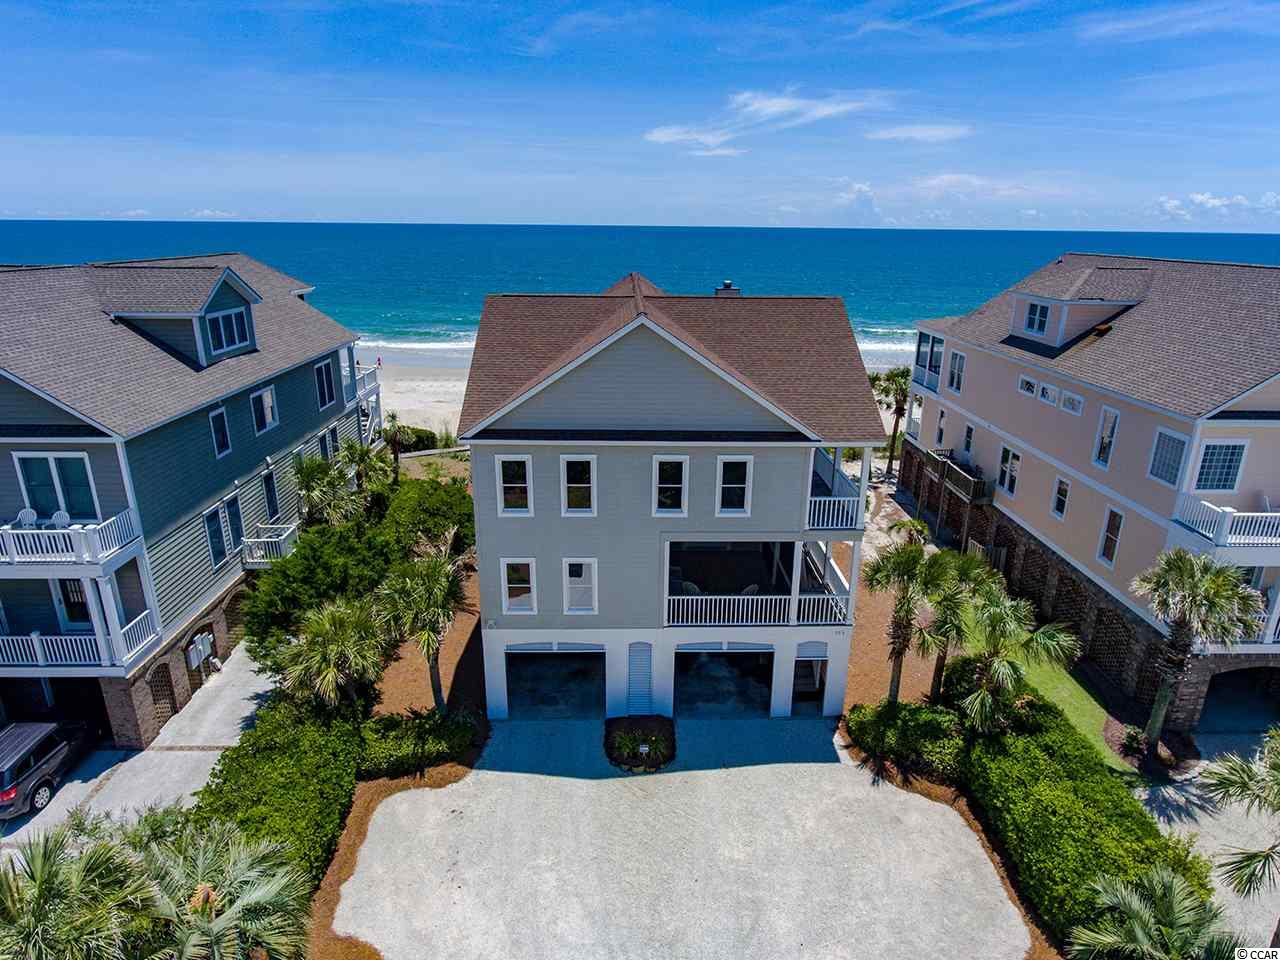 This timeless oceanfront home is being offered fully furnished and is ready for you and your family to live your best, beach life. There are several large porches with direct ocean views. Simplicity in form and function is just what you need at the beach. There are 5 bedrooms and 5 full baths. The open kitchen, dining area and great room are on the top floor providing inviting views in your main living areas. An elevator gives easy access to all floors. Washer and dryers on both levels, plenty of storage for you beach toys, steps to the beach, and a small den on the first level make it a great family home. Enjoy the Pawleys Island and Litchfield coastal heritage with your family. Inlet Point South is a wonderful gated community in South Litchfield with a boat landing and pool offering fun for all. Call to learn about his home's rental income and much more.